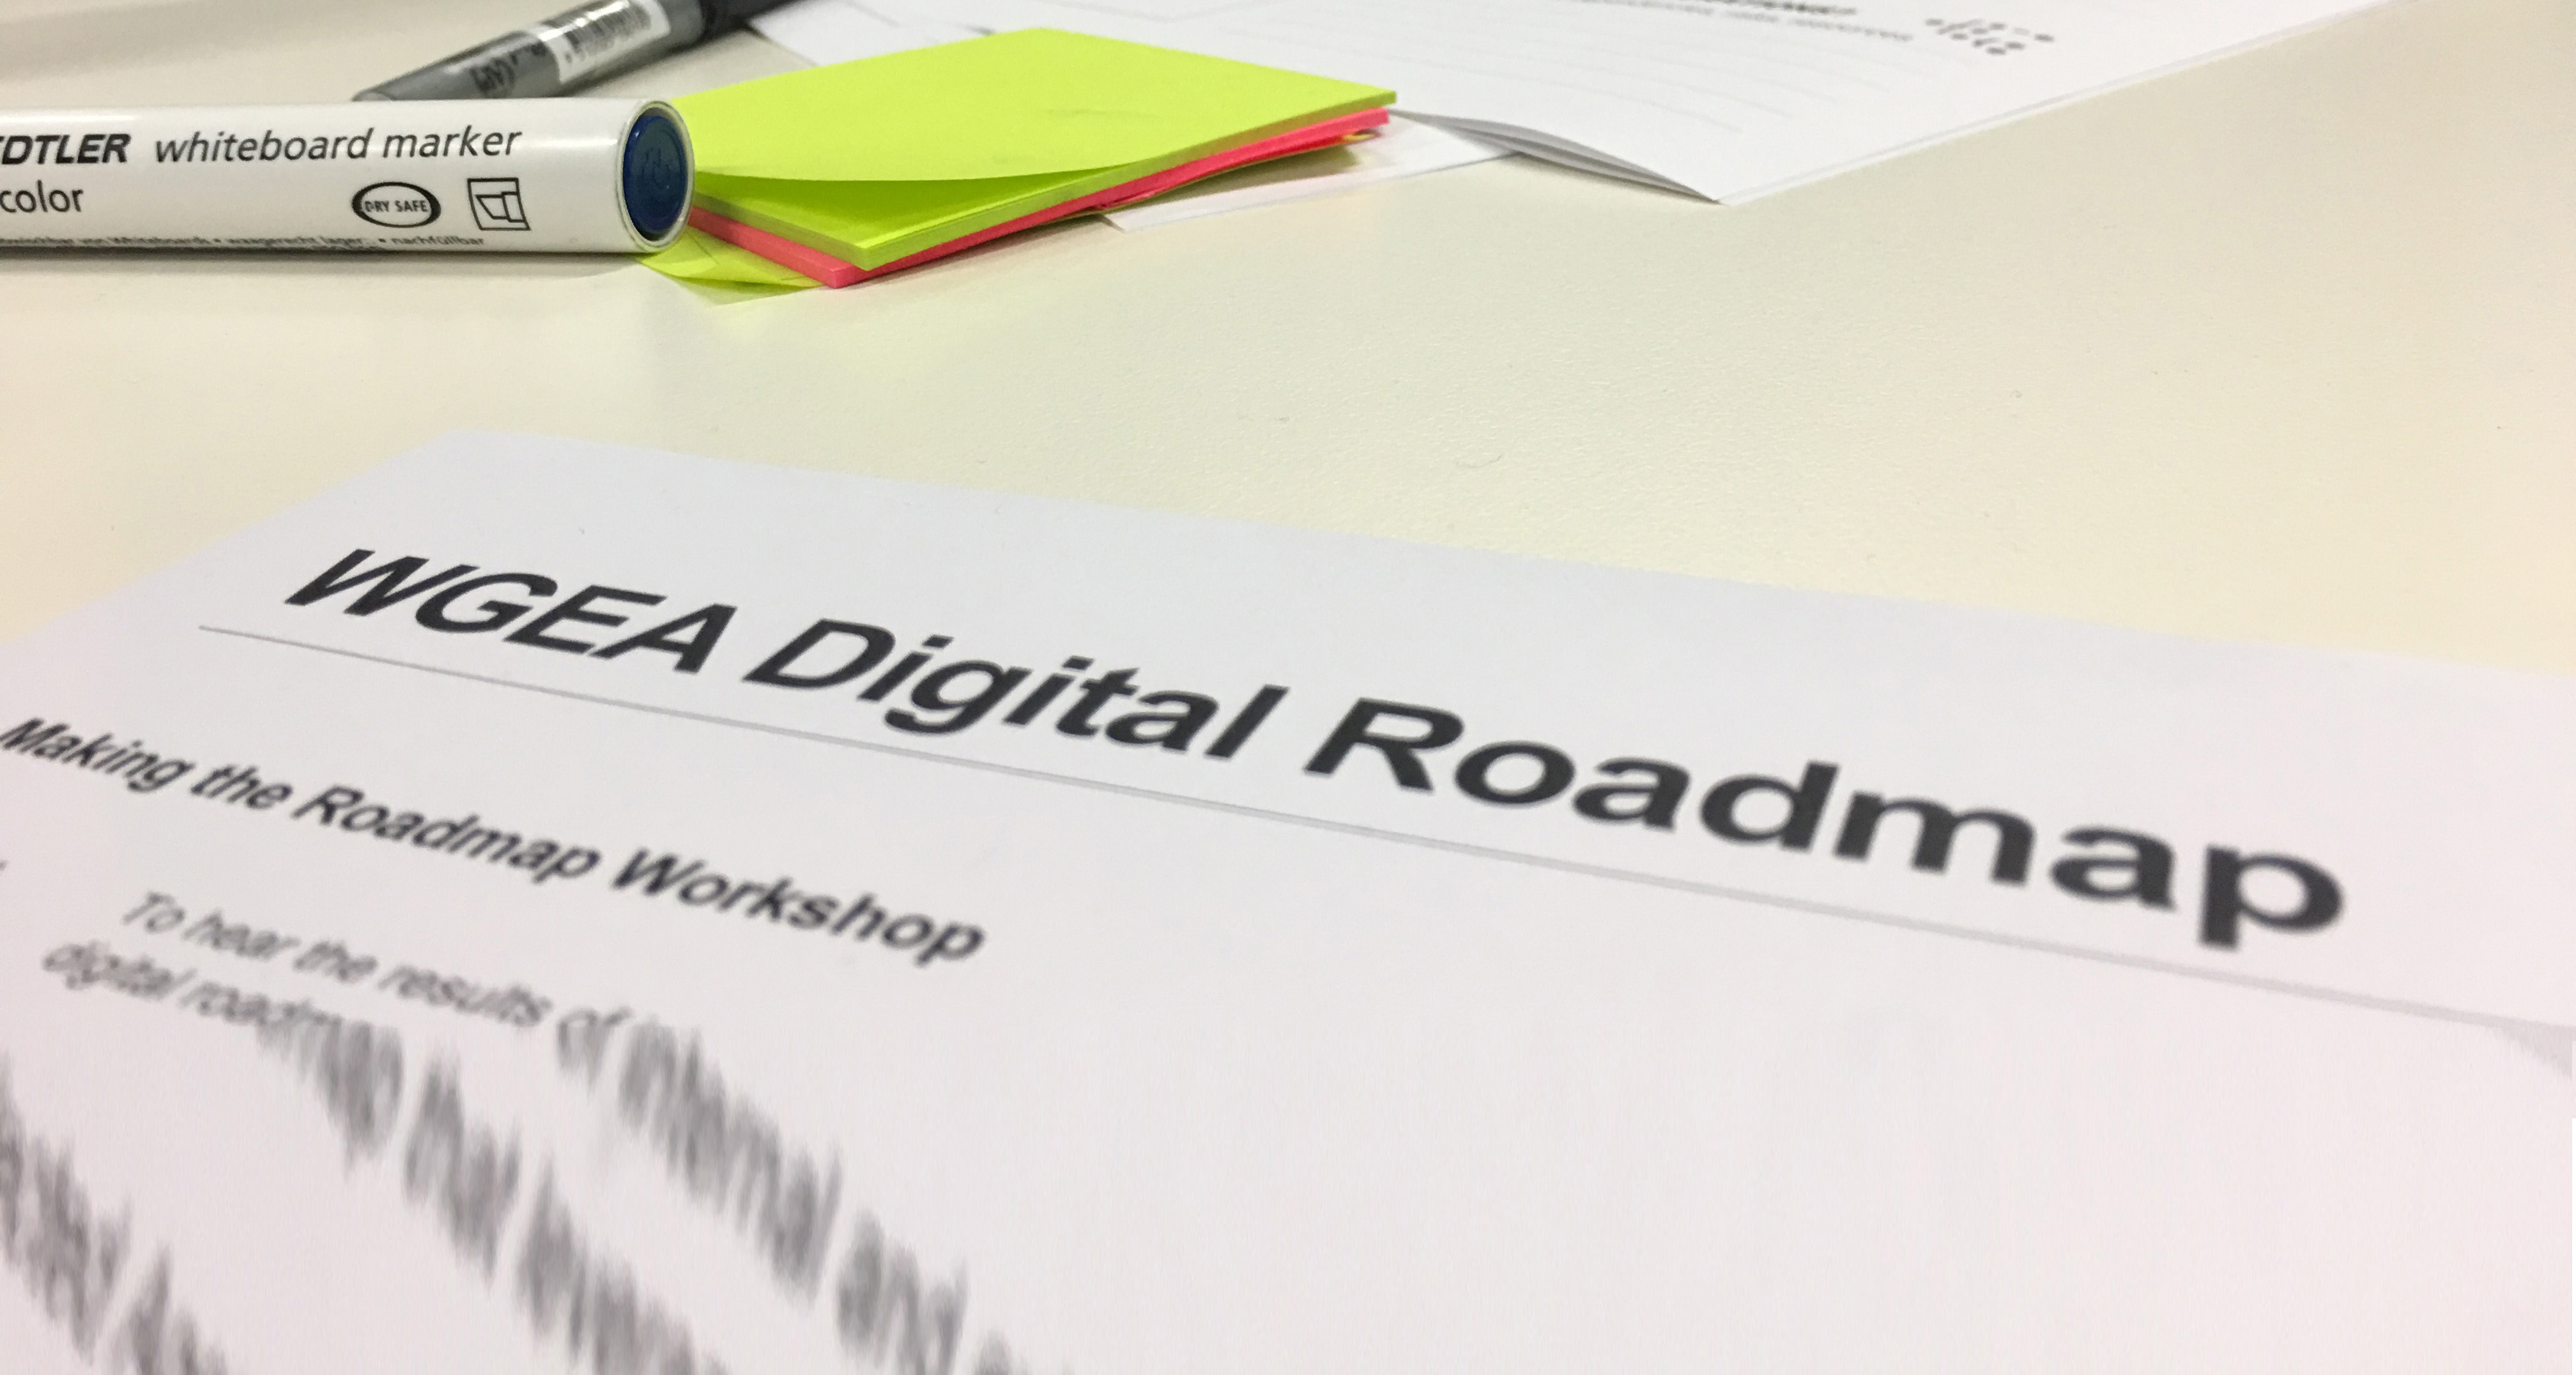 """Image of area of tabletop with markers and sticky notes and part of a page titled """"WGEA Digital Roadmap"""""""